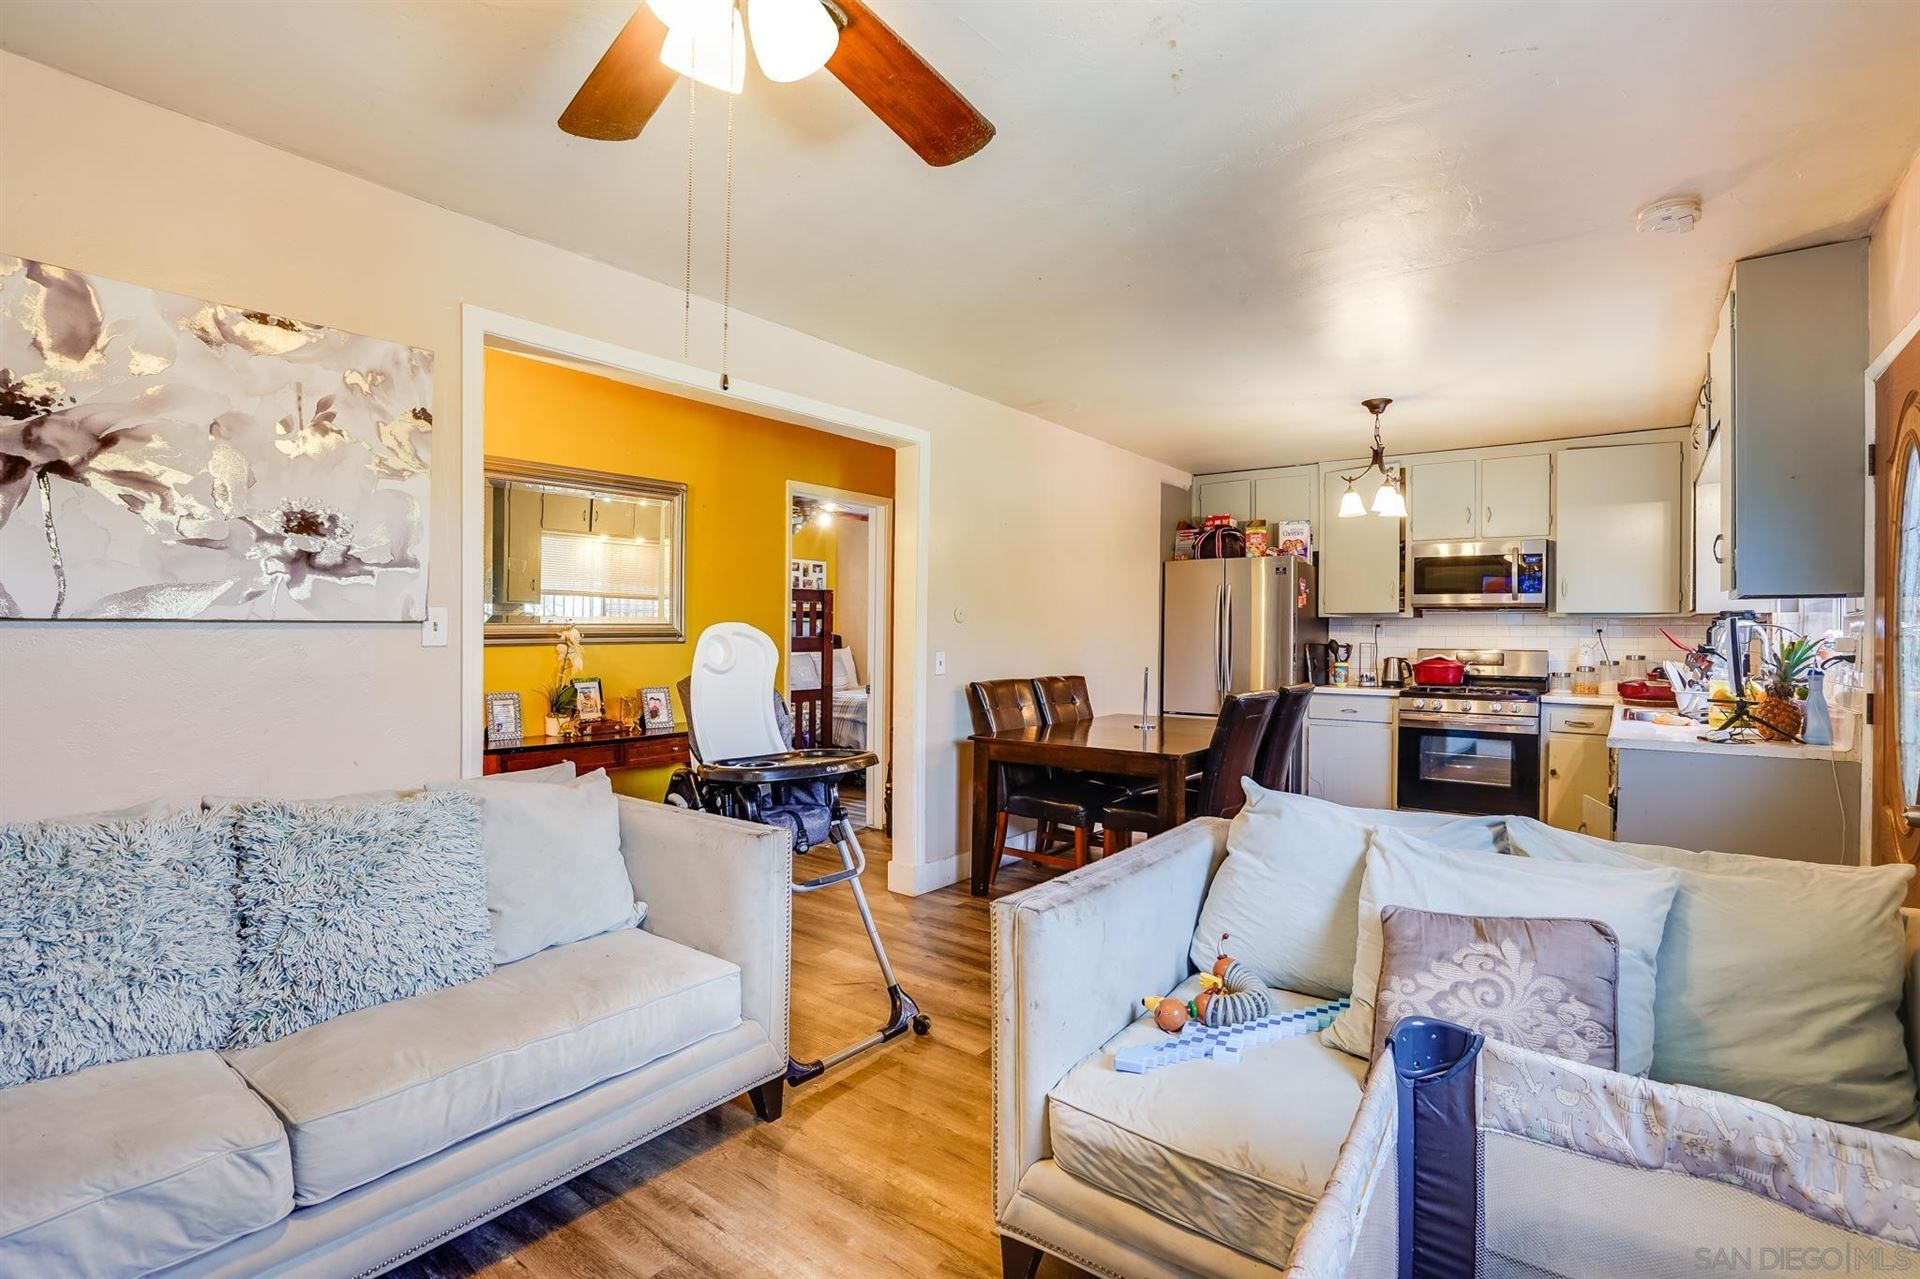 Photo of 1121 - 1135 Sweetwater Ln, Spring Valley, CA 91977 (MLS # 210023444)